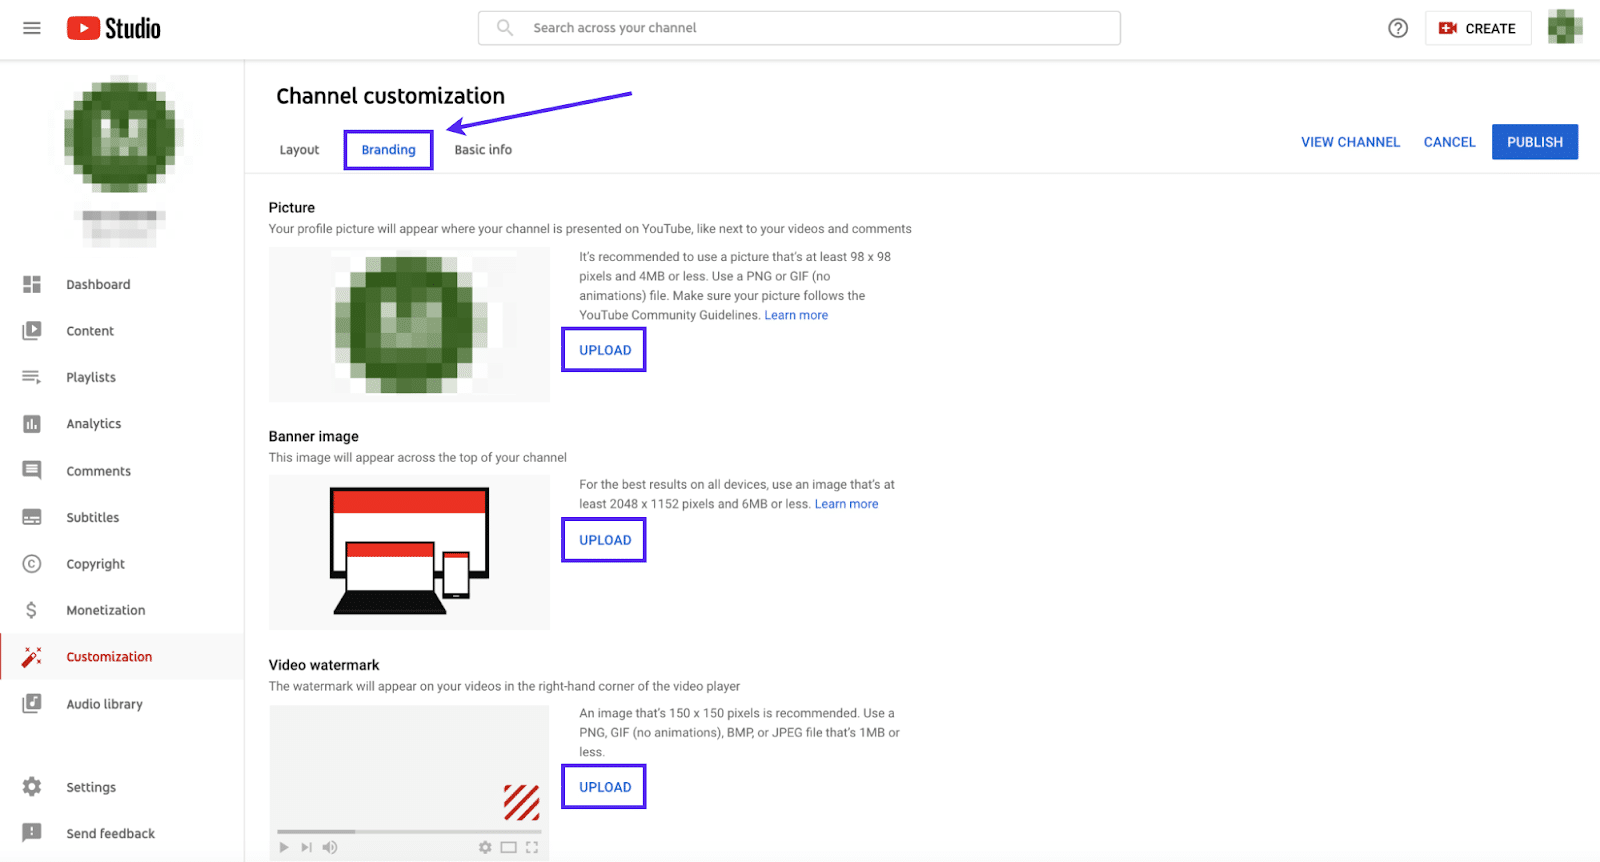 YouTube's channel customization view with an arrow pointing to the Branding tab